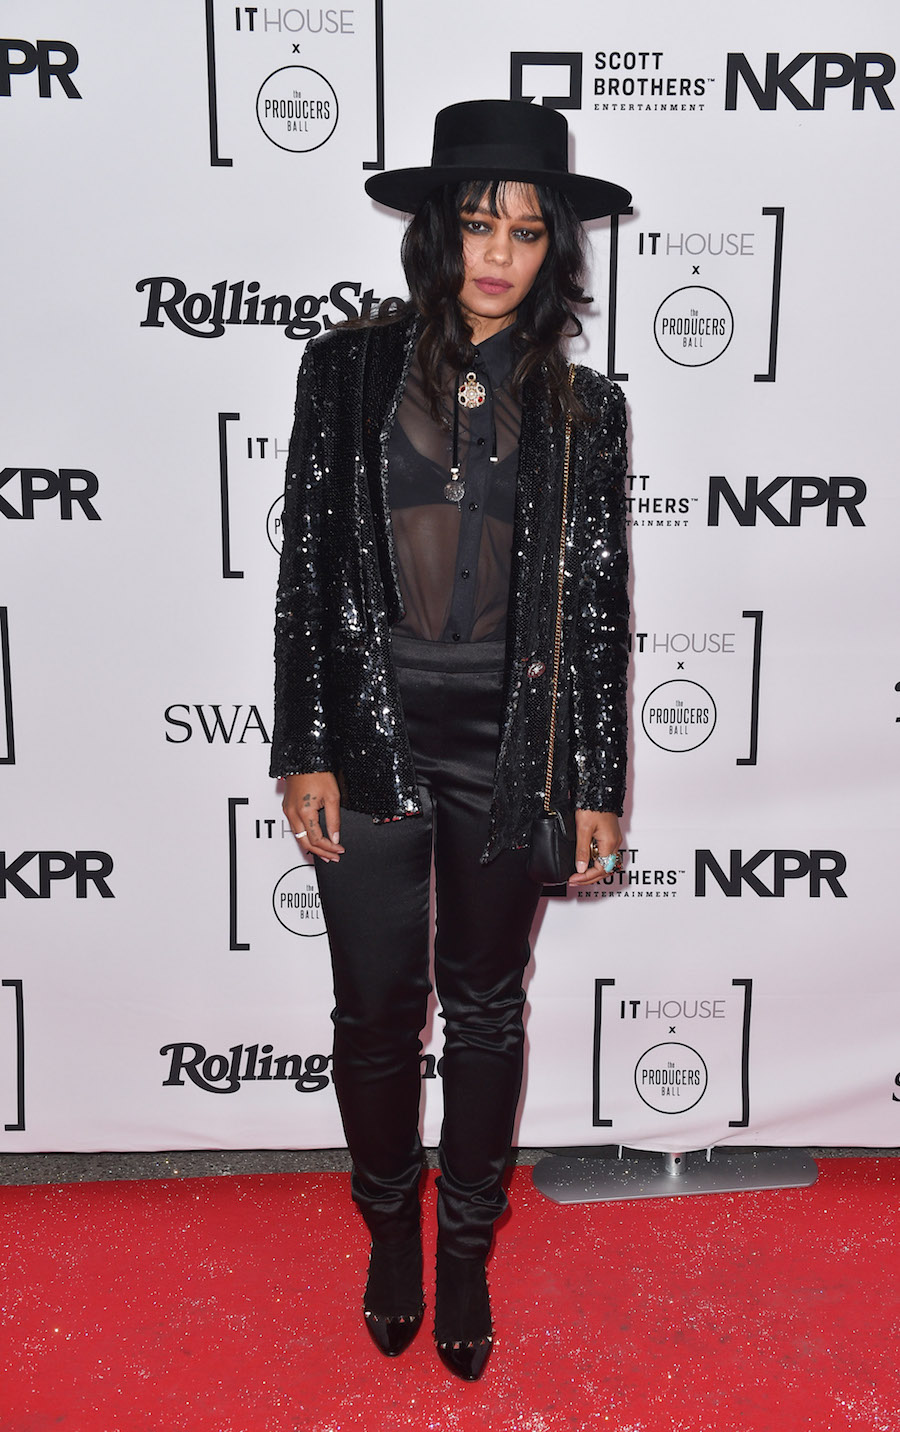 Fefe Dobson at the IT House x Producers Ball (Photo: Courtesy of NKPR) | View the VIBE